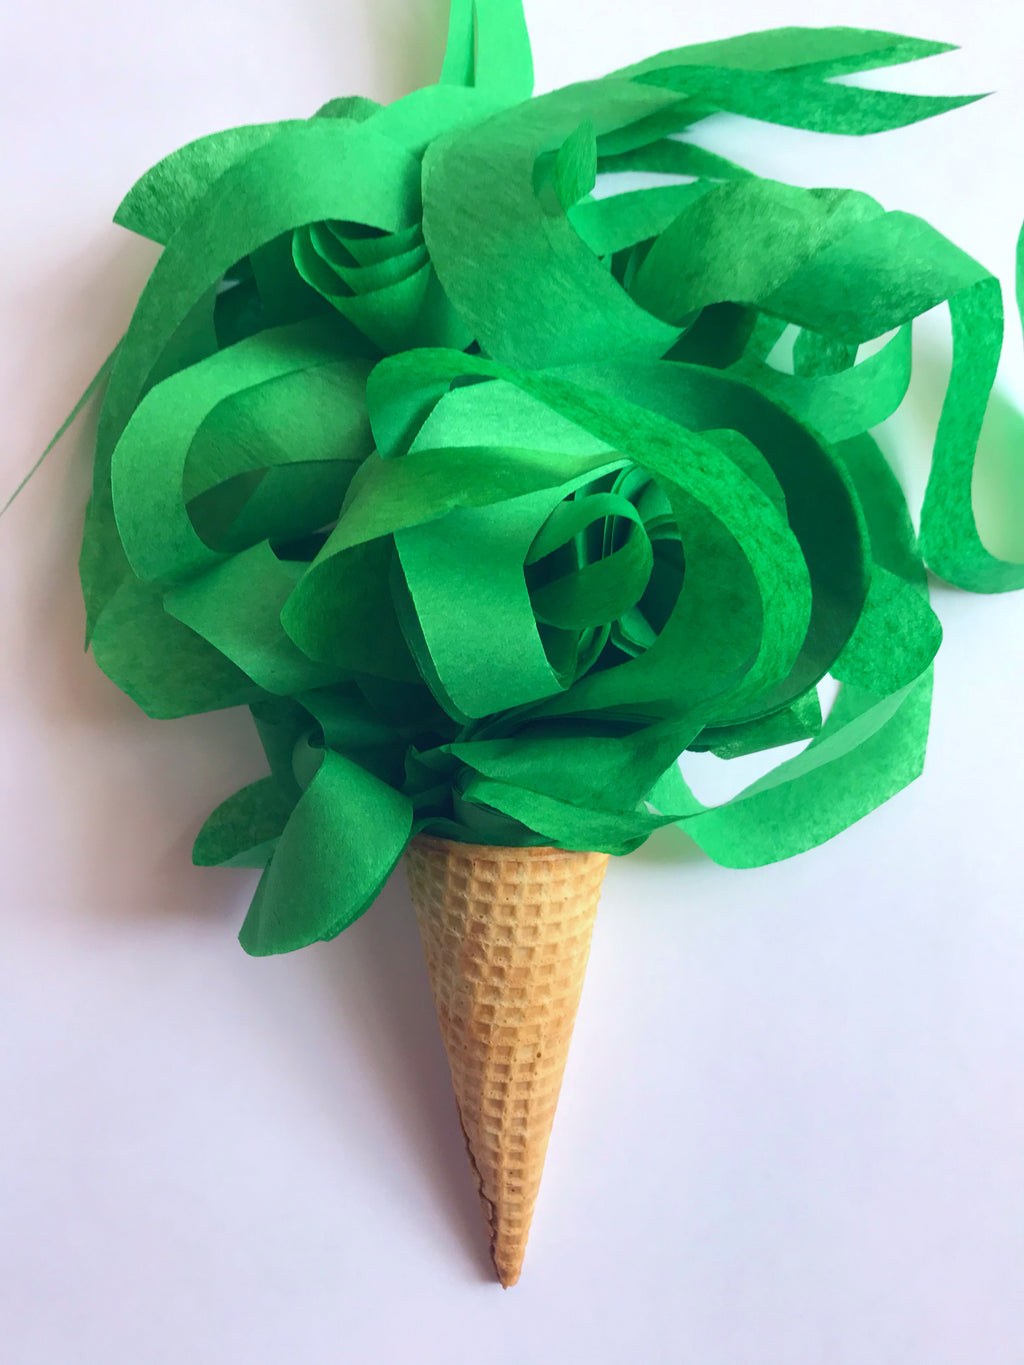 Green festive curly tissue paper toss made from 100% premium recycled fibers